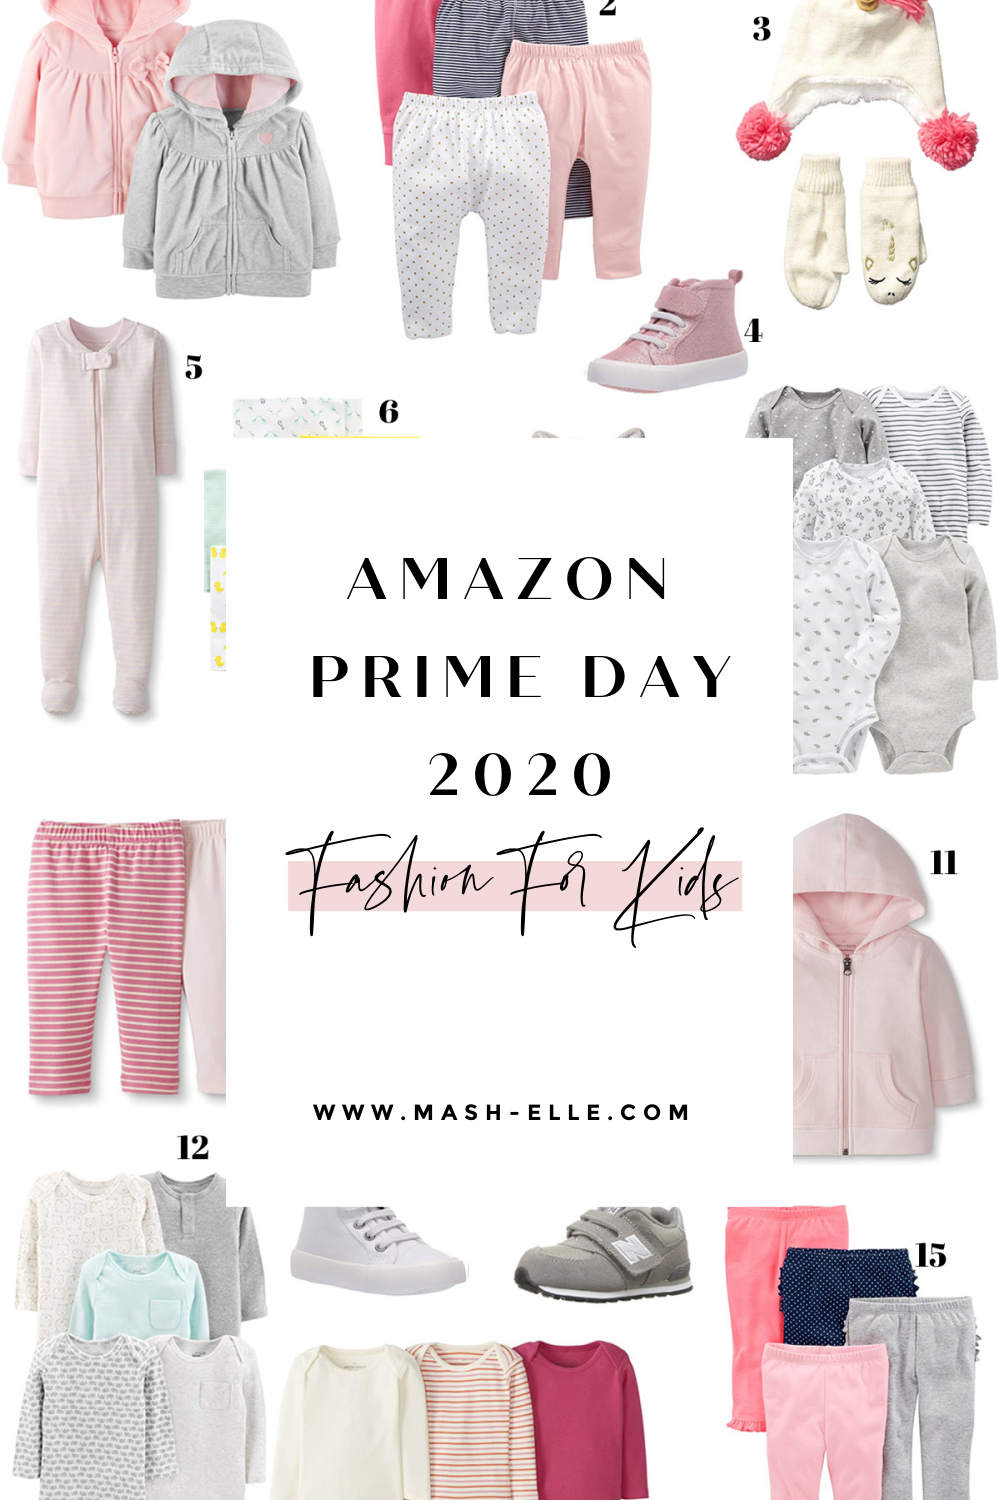 kids prime day | amazon prime day | kids fashion | fashion gift guide for kids | amazon prime day what to buy for kids